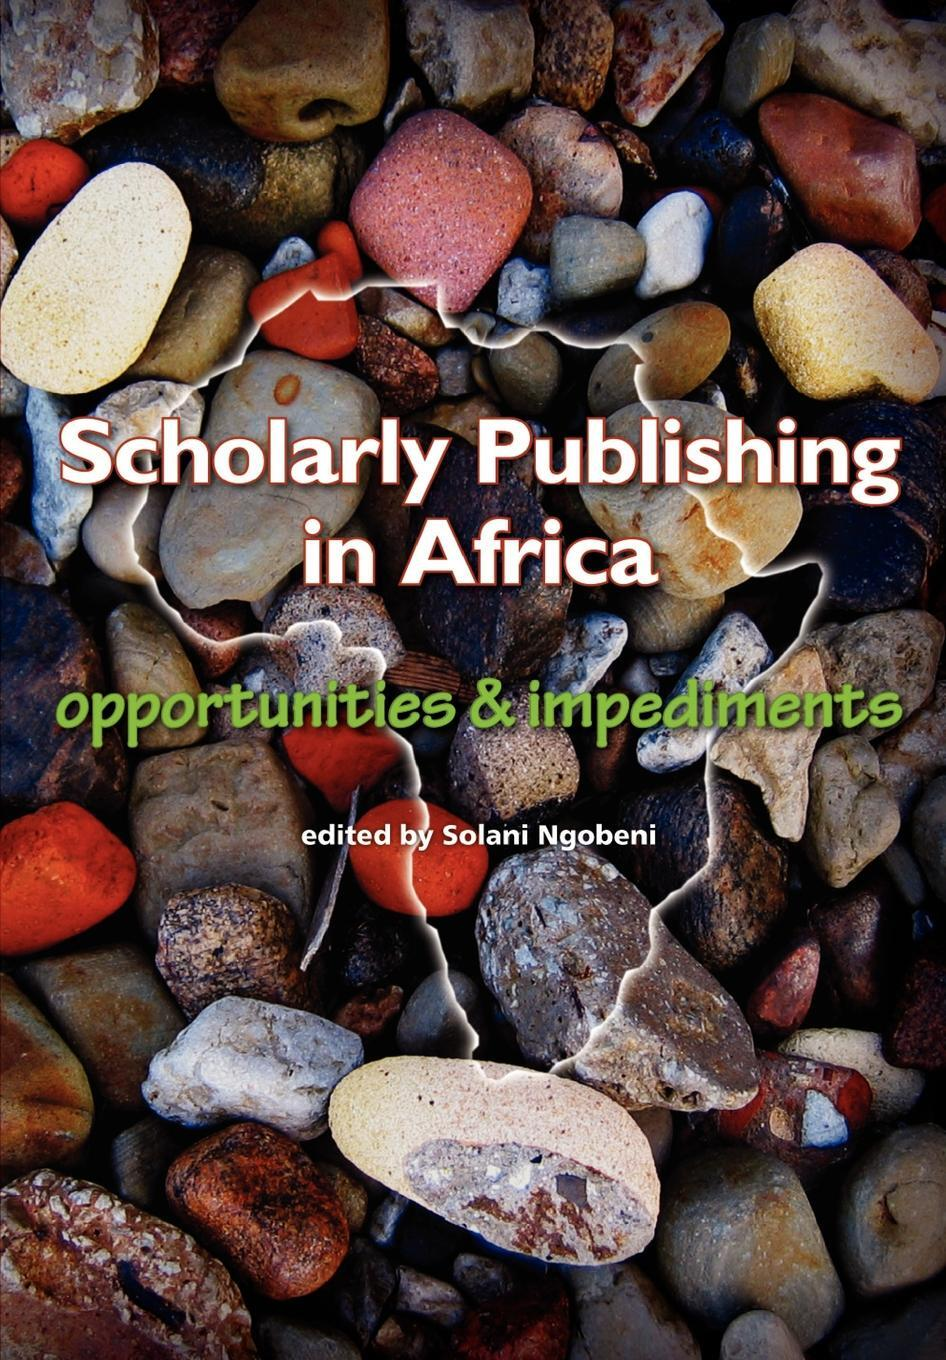 Scholarly Publishing in Africa. Opportunities & Impediments.